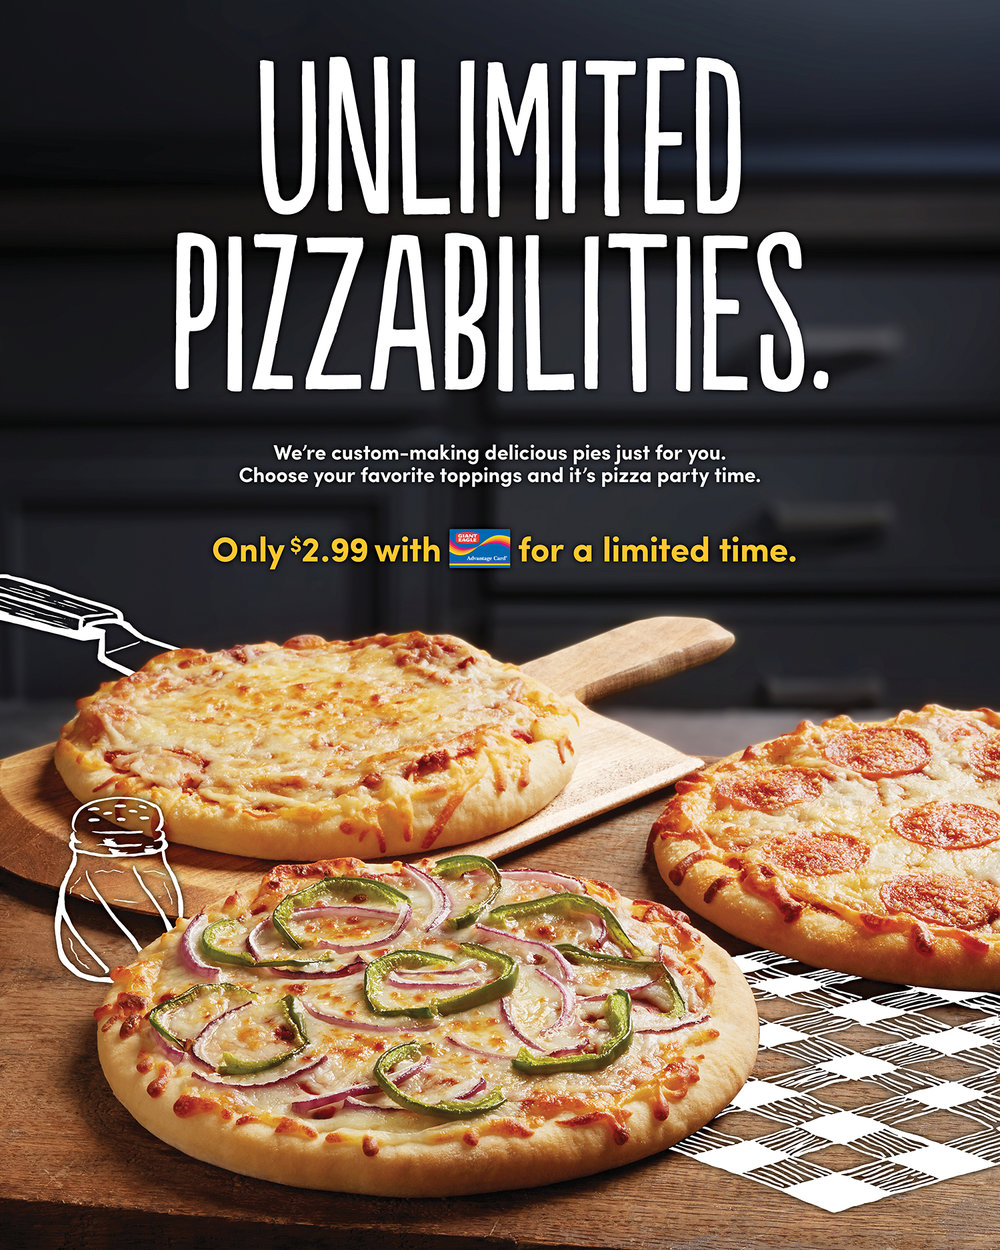 Unlimited Pizzabilities